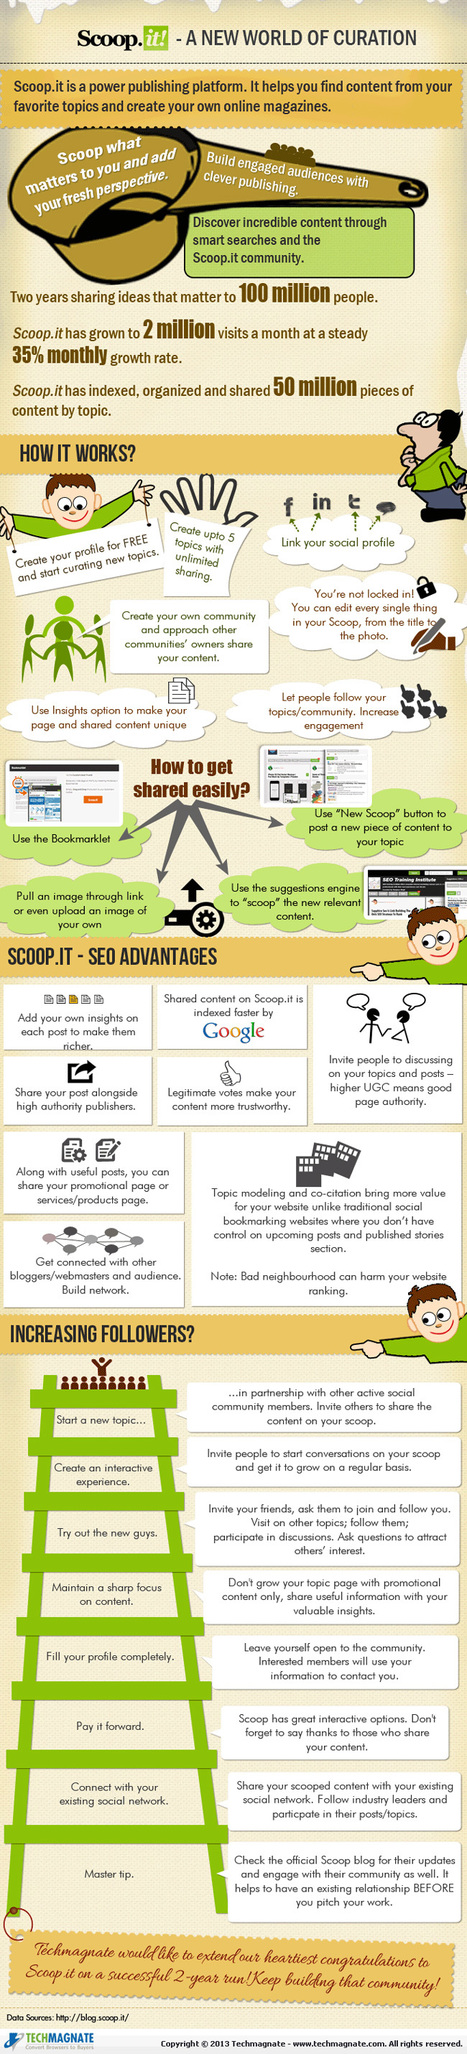 Scoop.It for SEO – A New World of Curation [Infographic] | Pedalogica: educación y TIC | Scoop.it